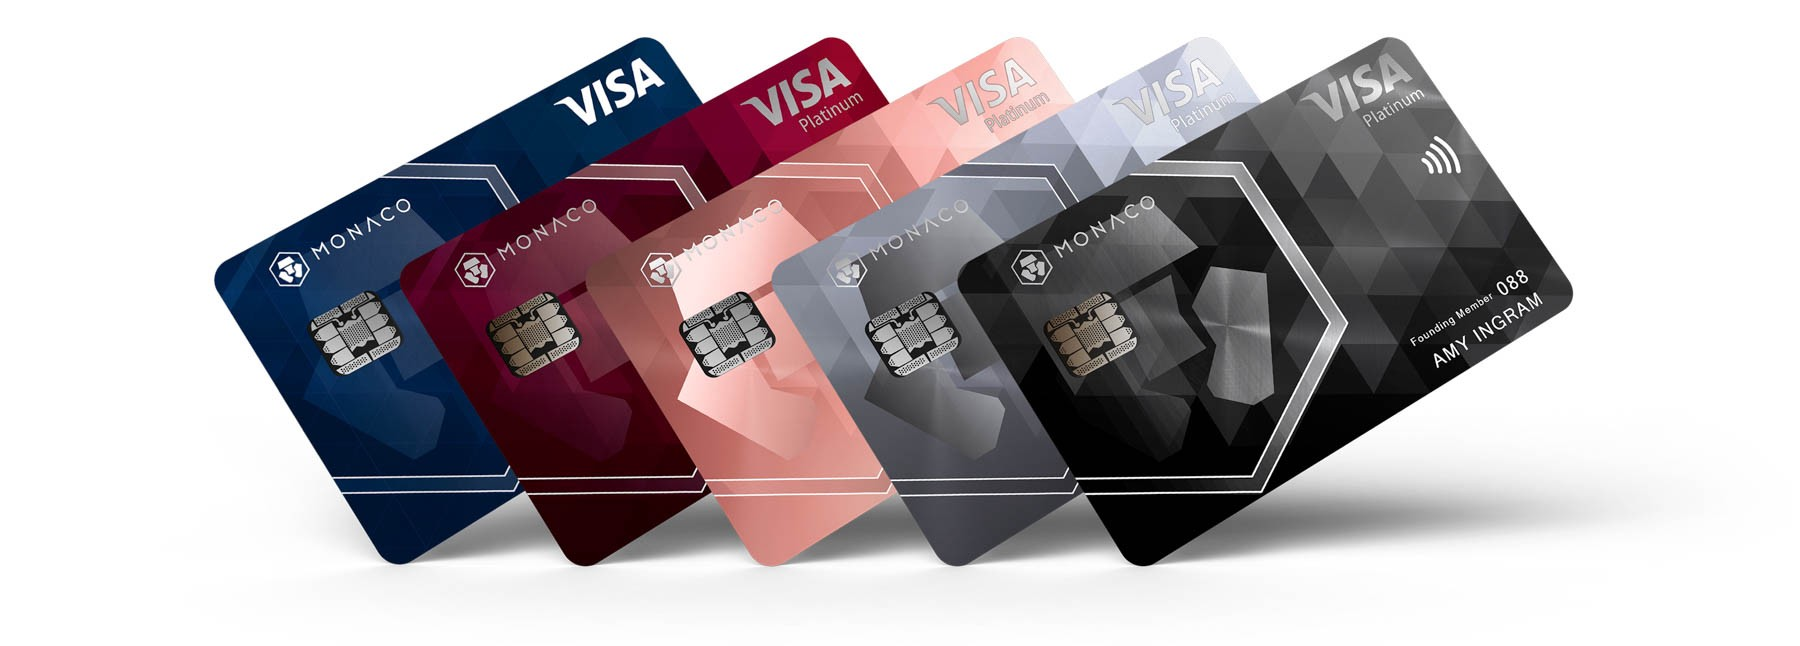 How to choose a Bitcoin card